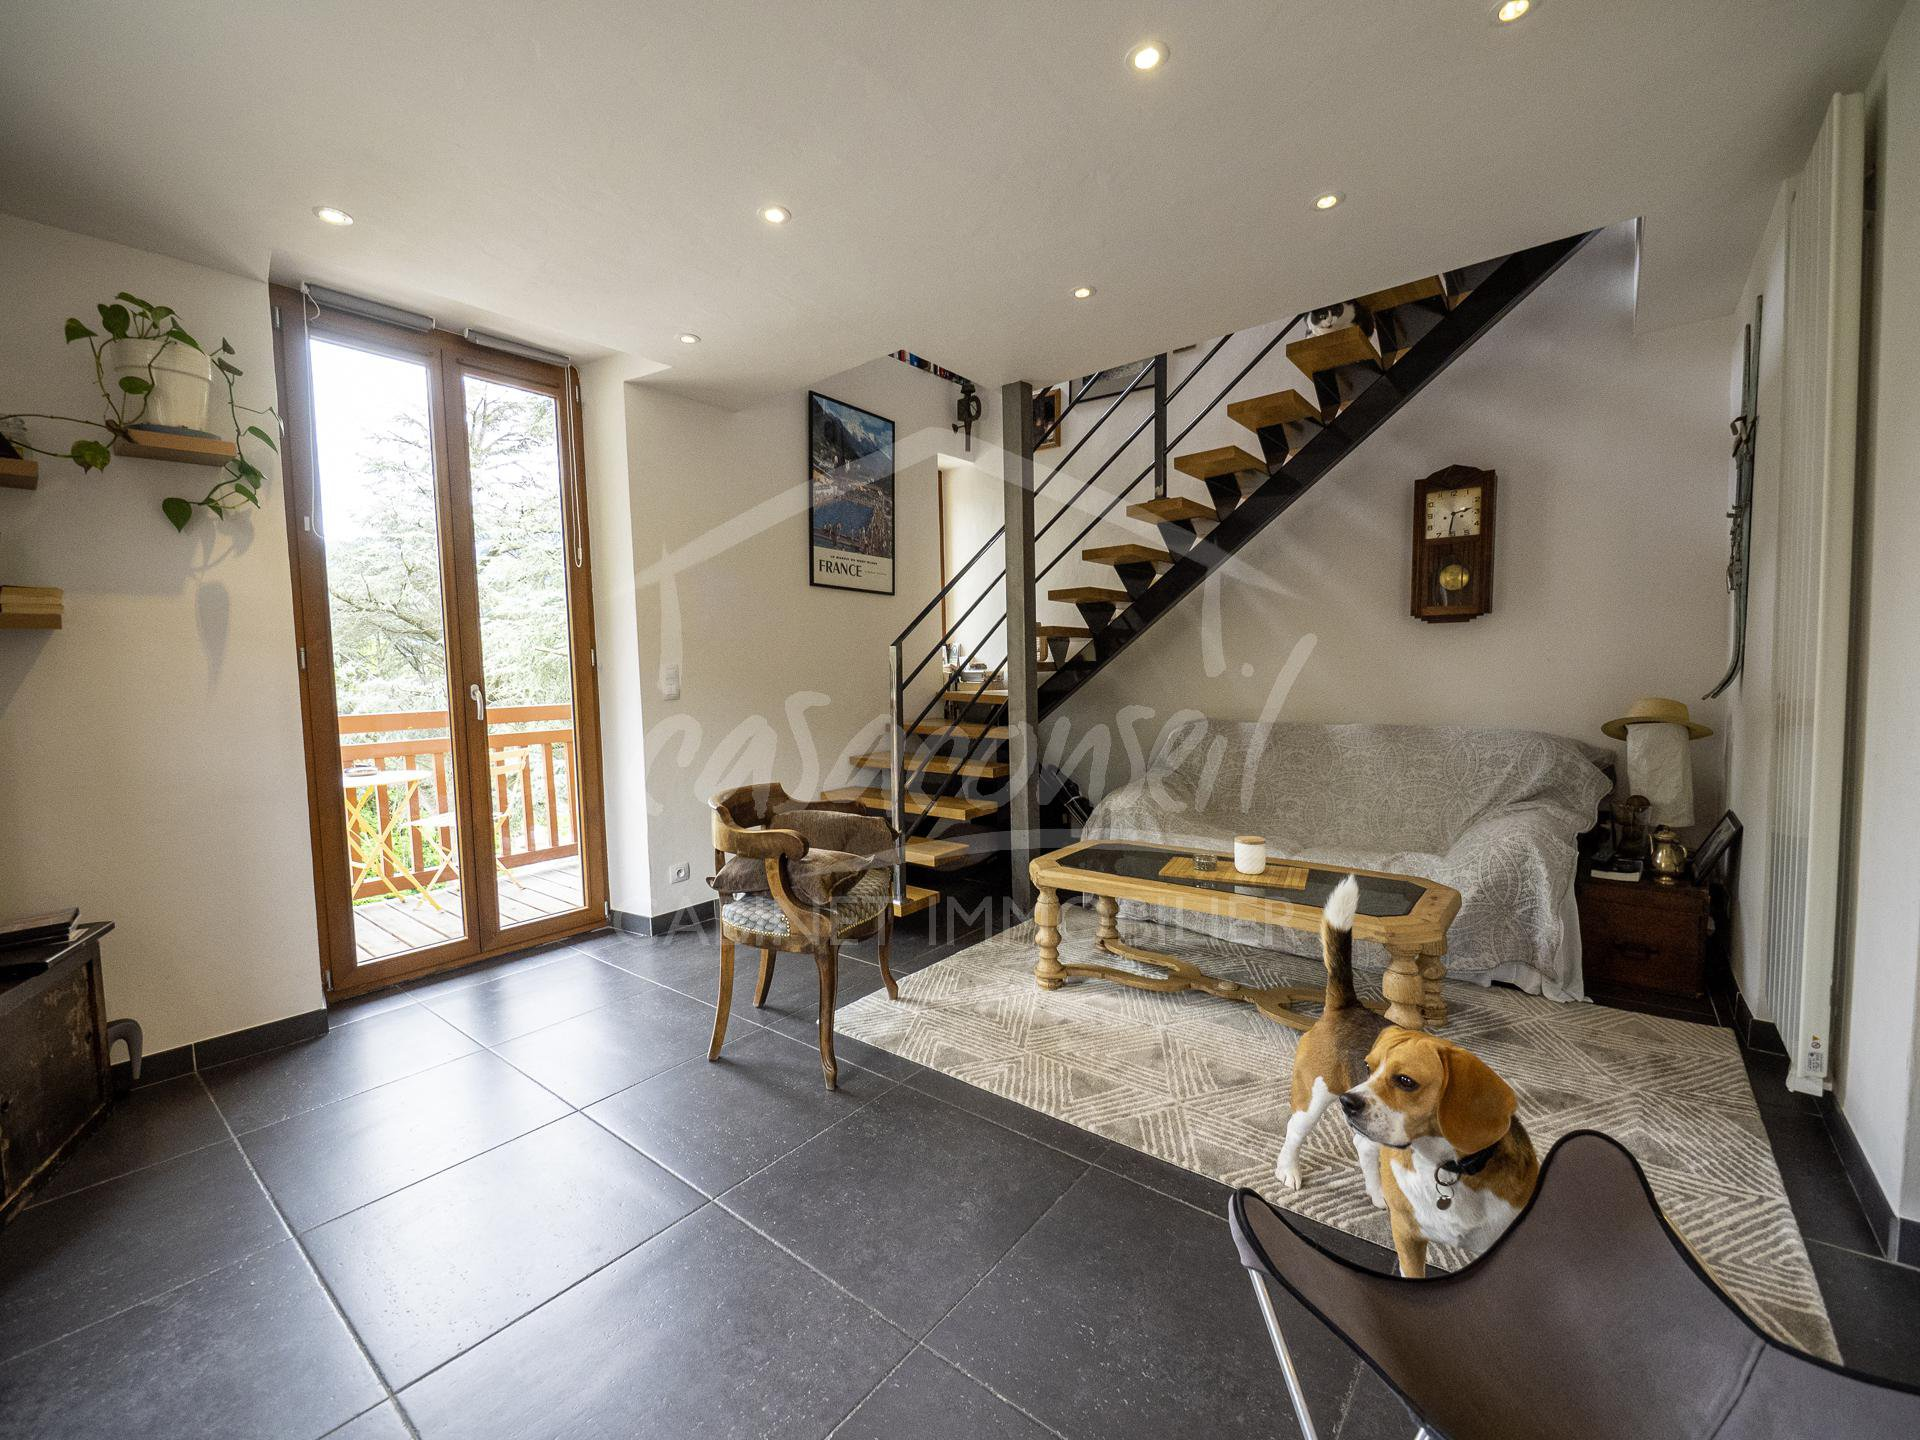 Escalier Mobil Home St Gervais Mont Blanc 2 Bedroom Duplex Apartment With Balcony